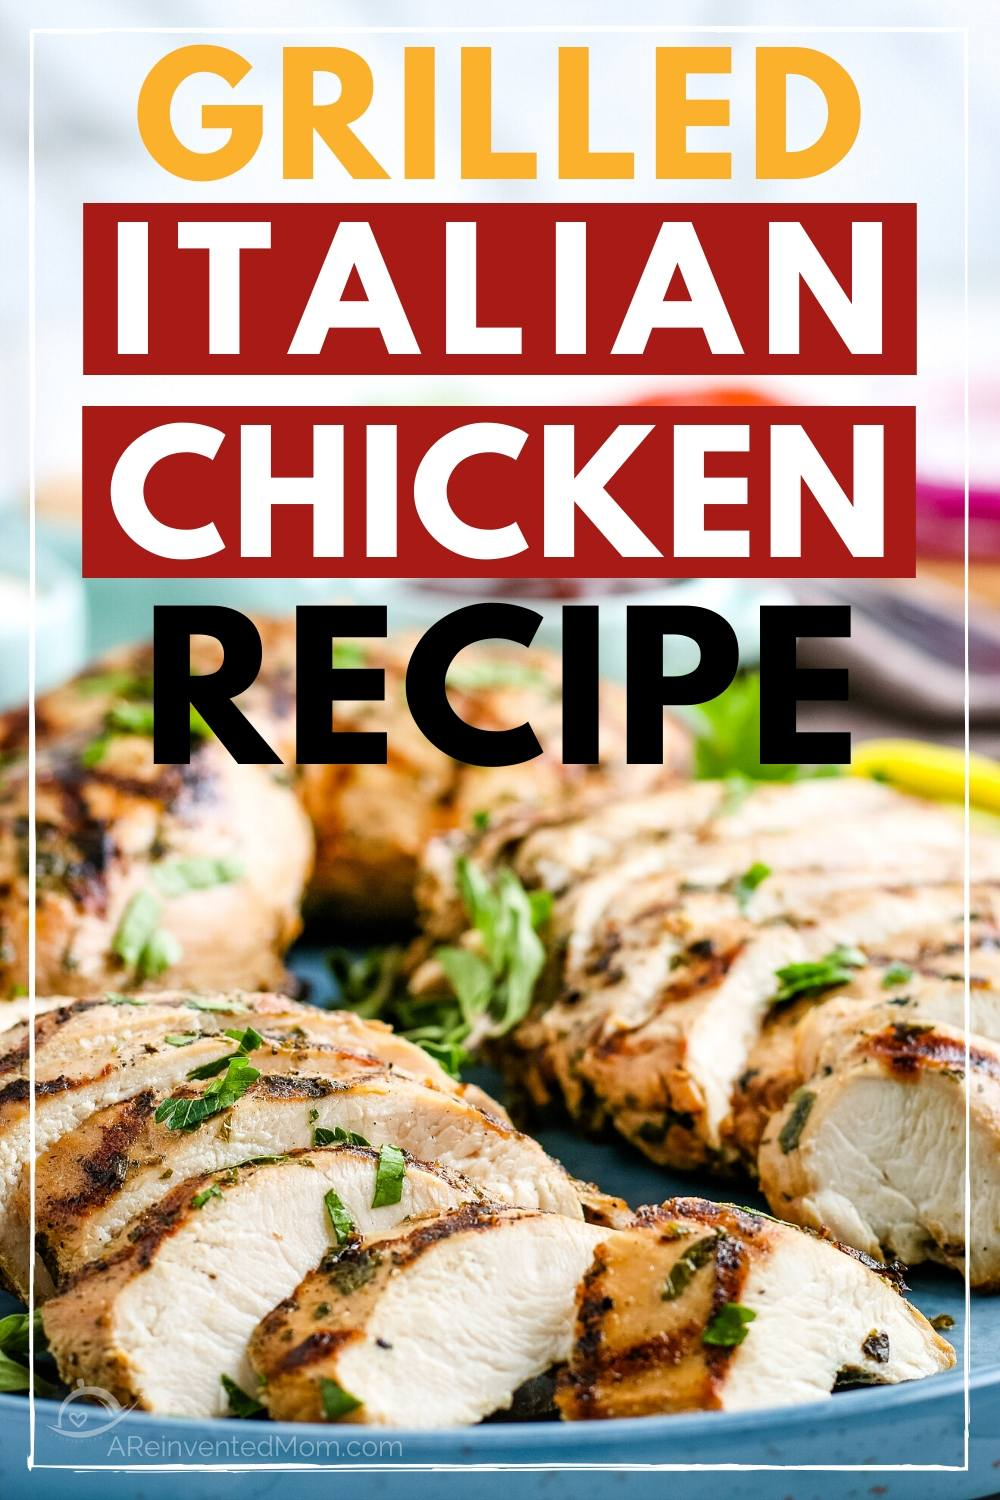 Close up of italian grilled chicken breasts topped with a garnish with a text overlay